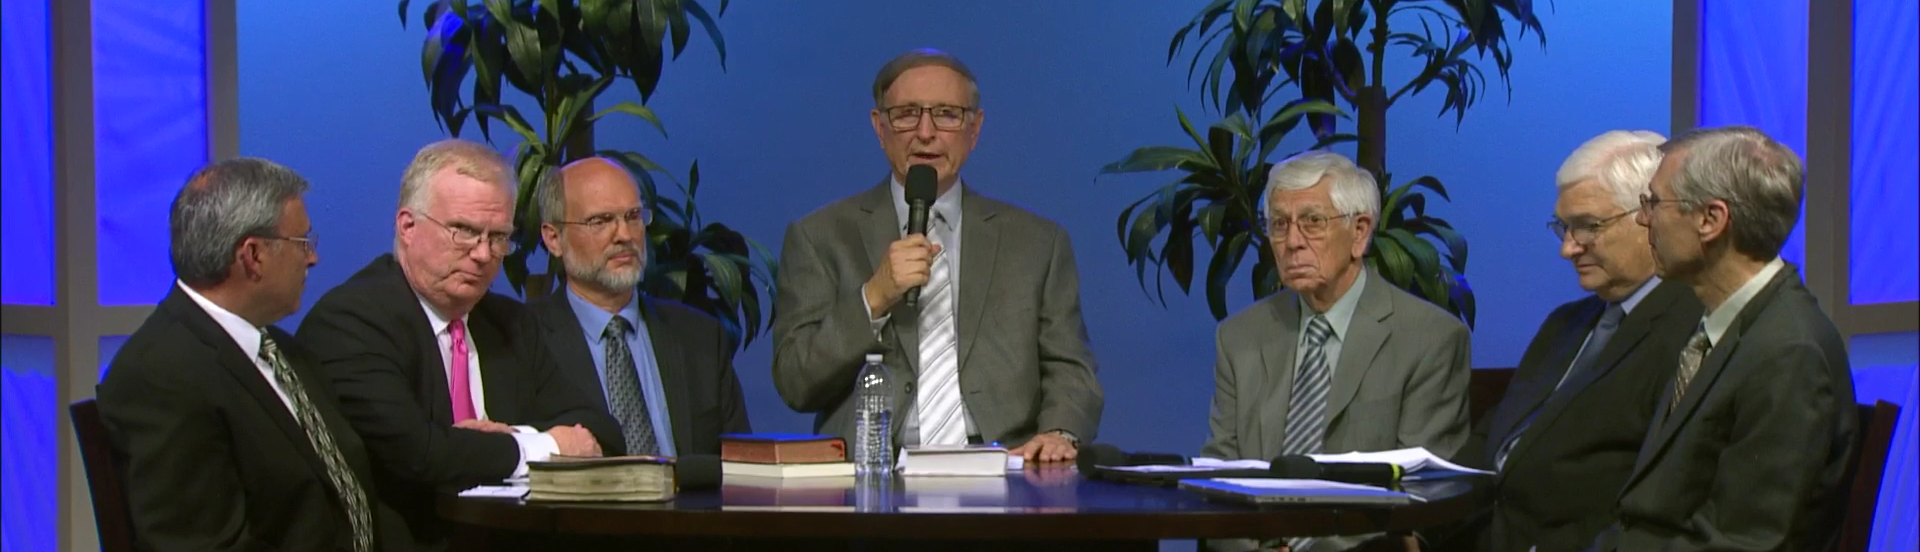 """Zach Galifianakis licenses """"Between Two Ferns"""" to Adventist Independent Ministry"""